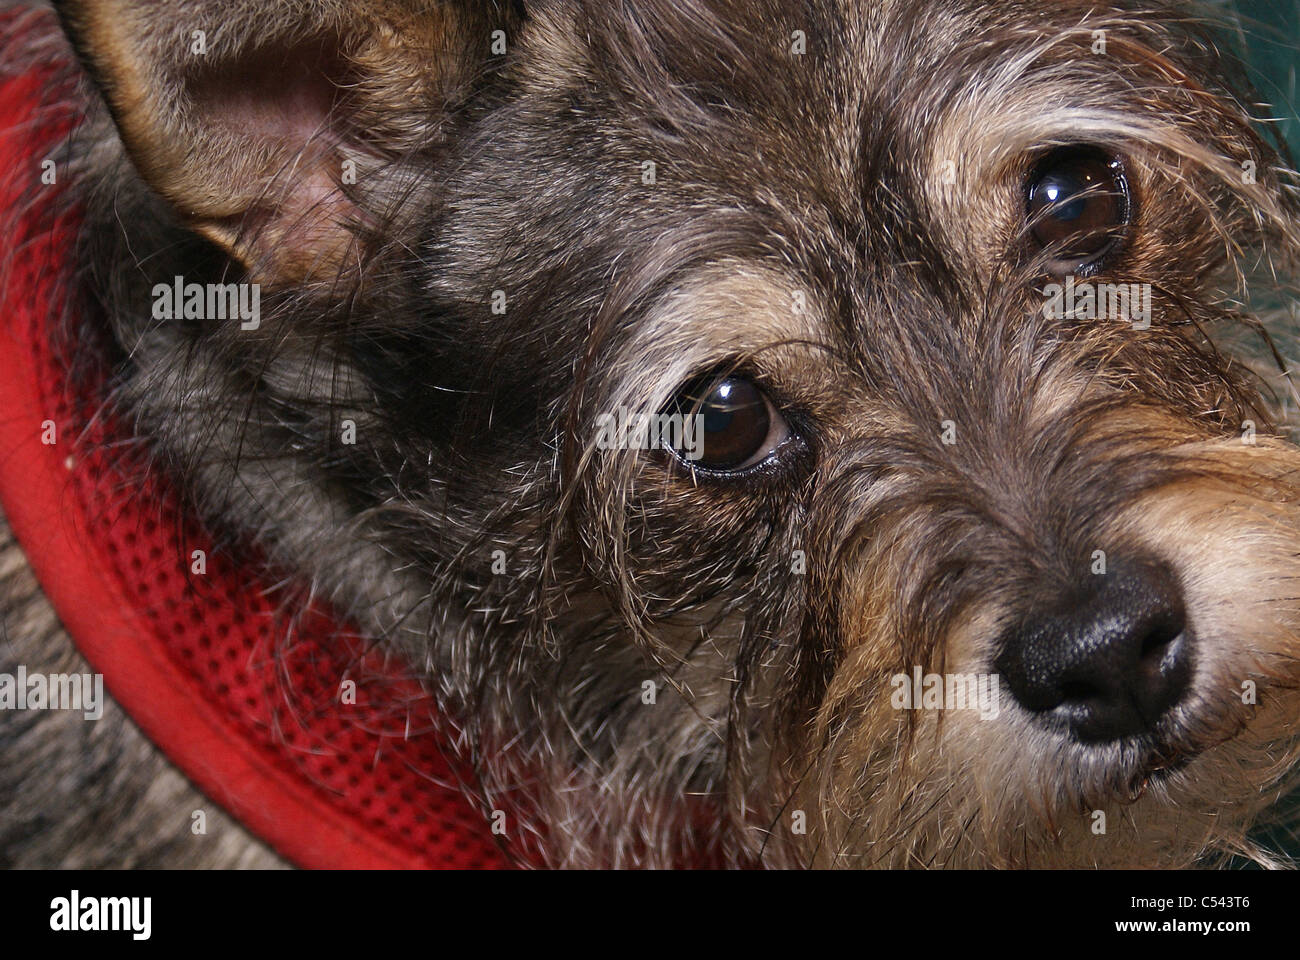 Cute dog face - Stock Image